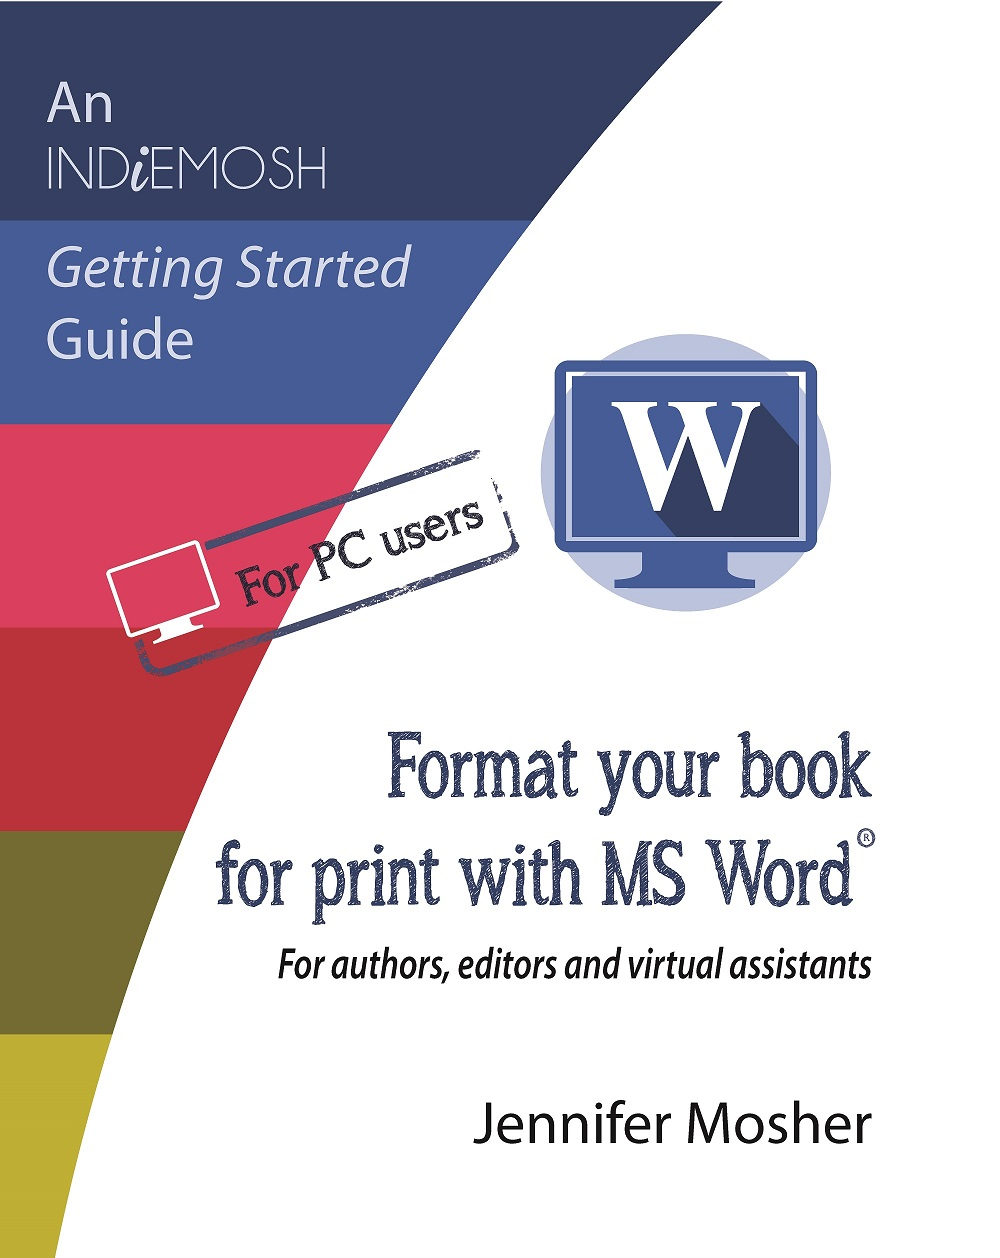 Format you book for print with MS Word(R)